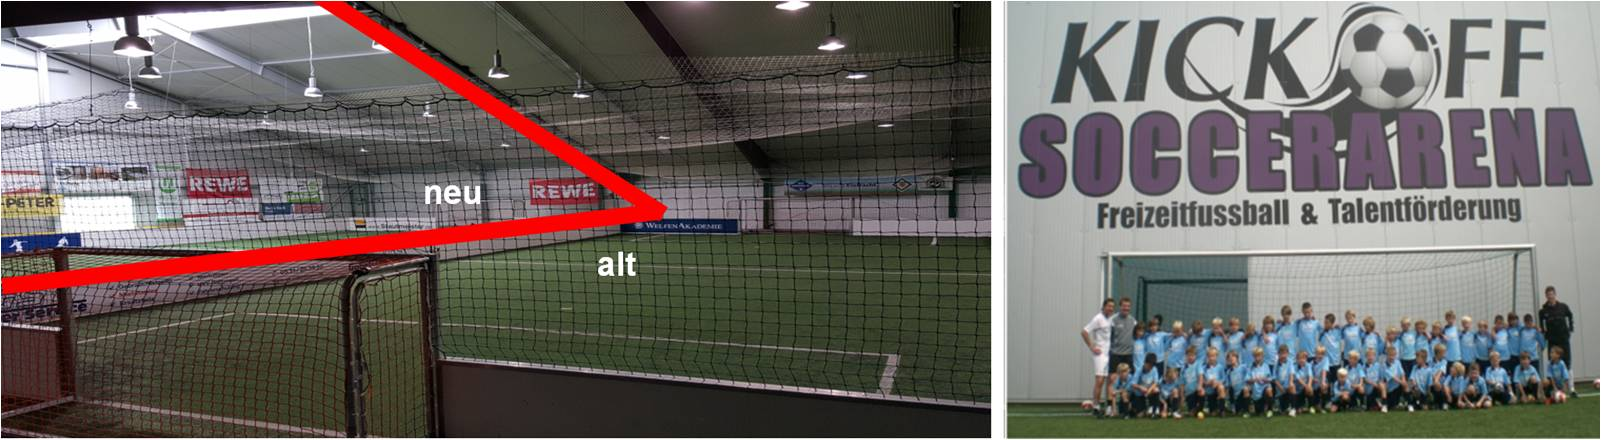 LED Distribution | Projects | Soccer Hall (KickOff Arena) | Braunschweig, Germany